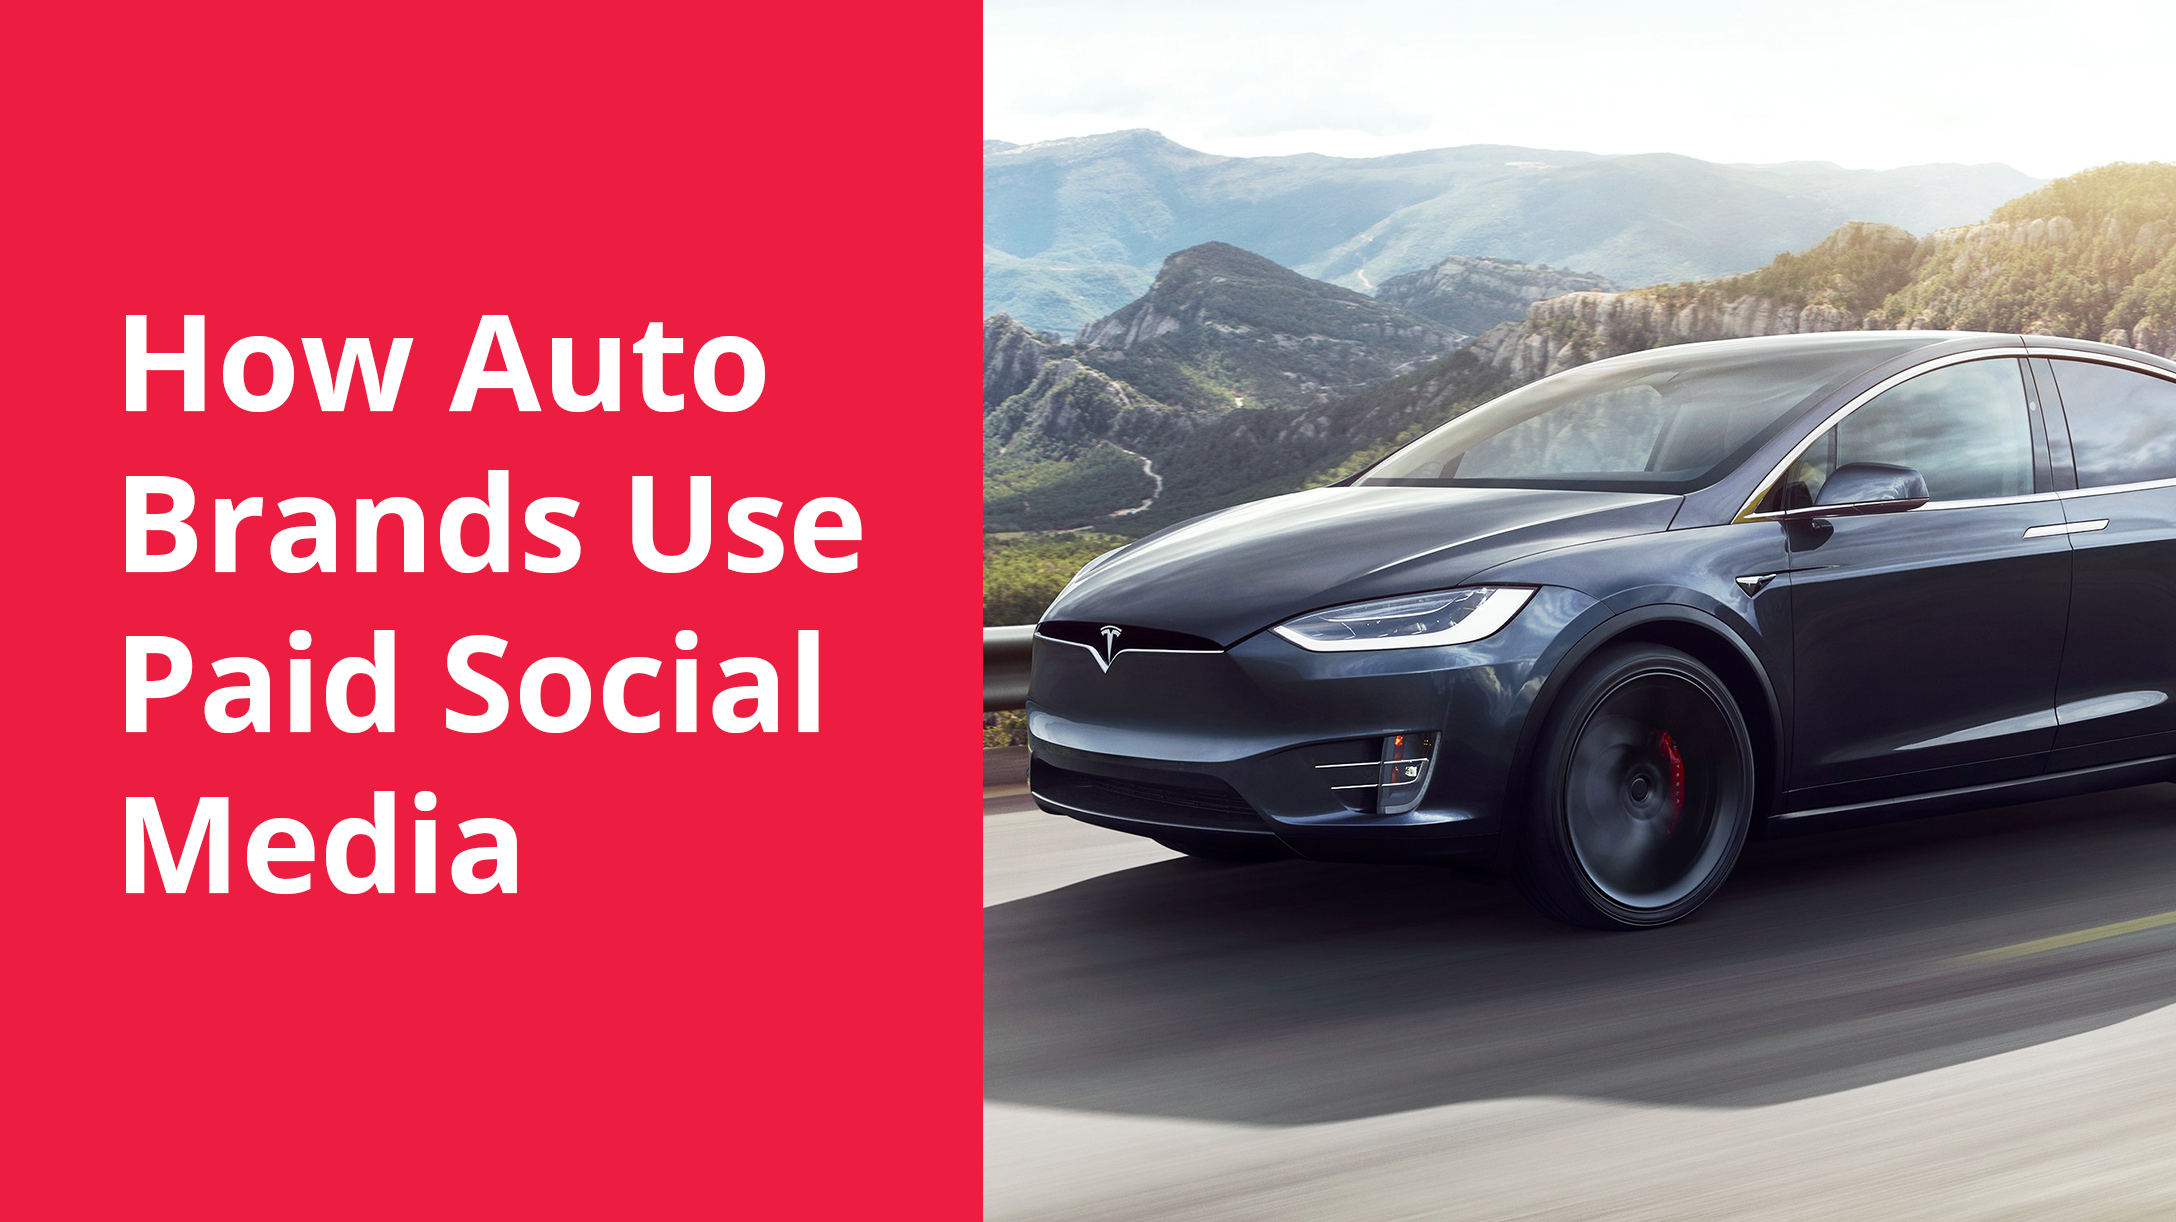 Ad Strategy Report: How Auto Brands Use Paid Social Media